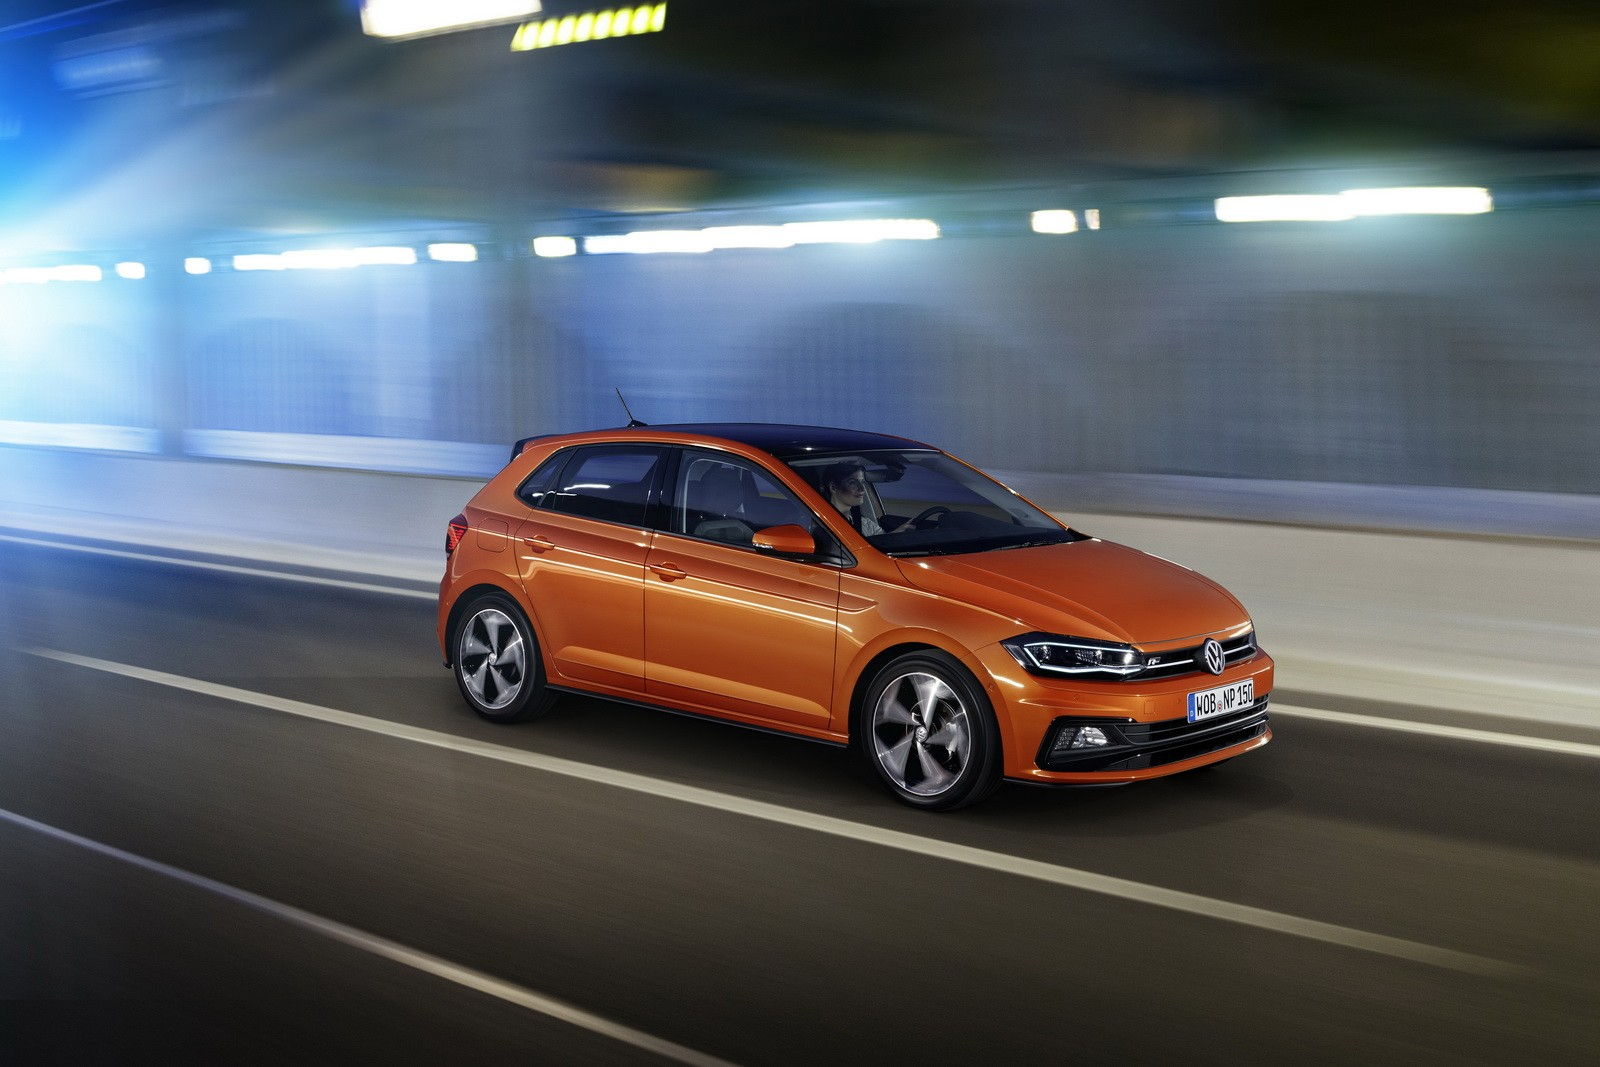 New 2018 volkswagen polo revealed has coolest dash ever for Interieur nouvelle polo